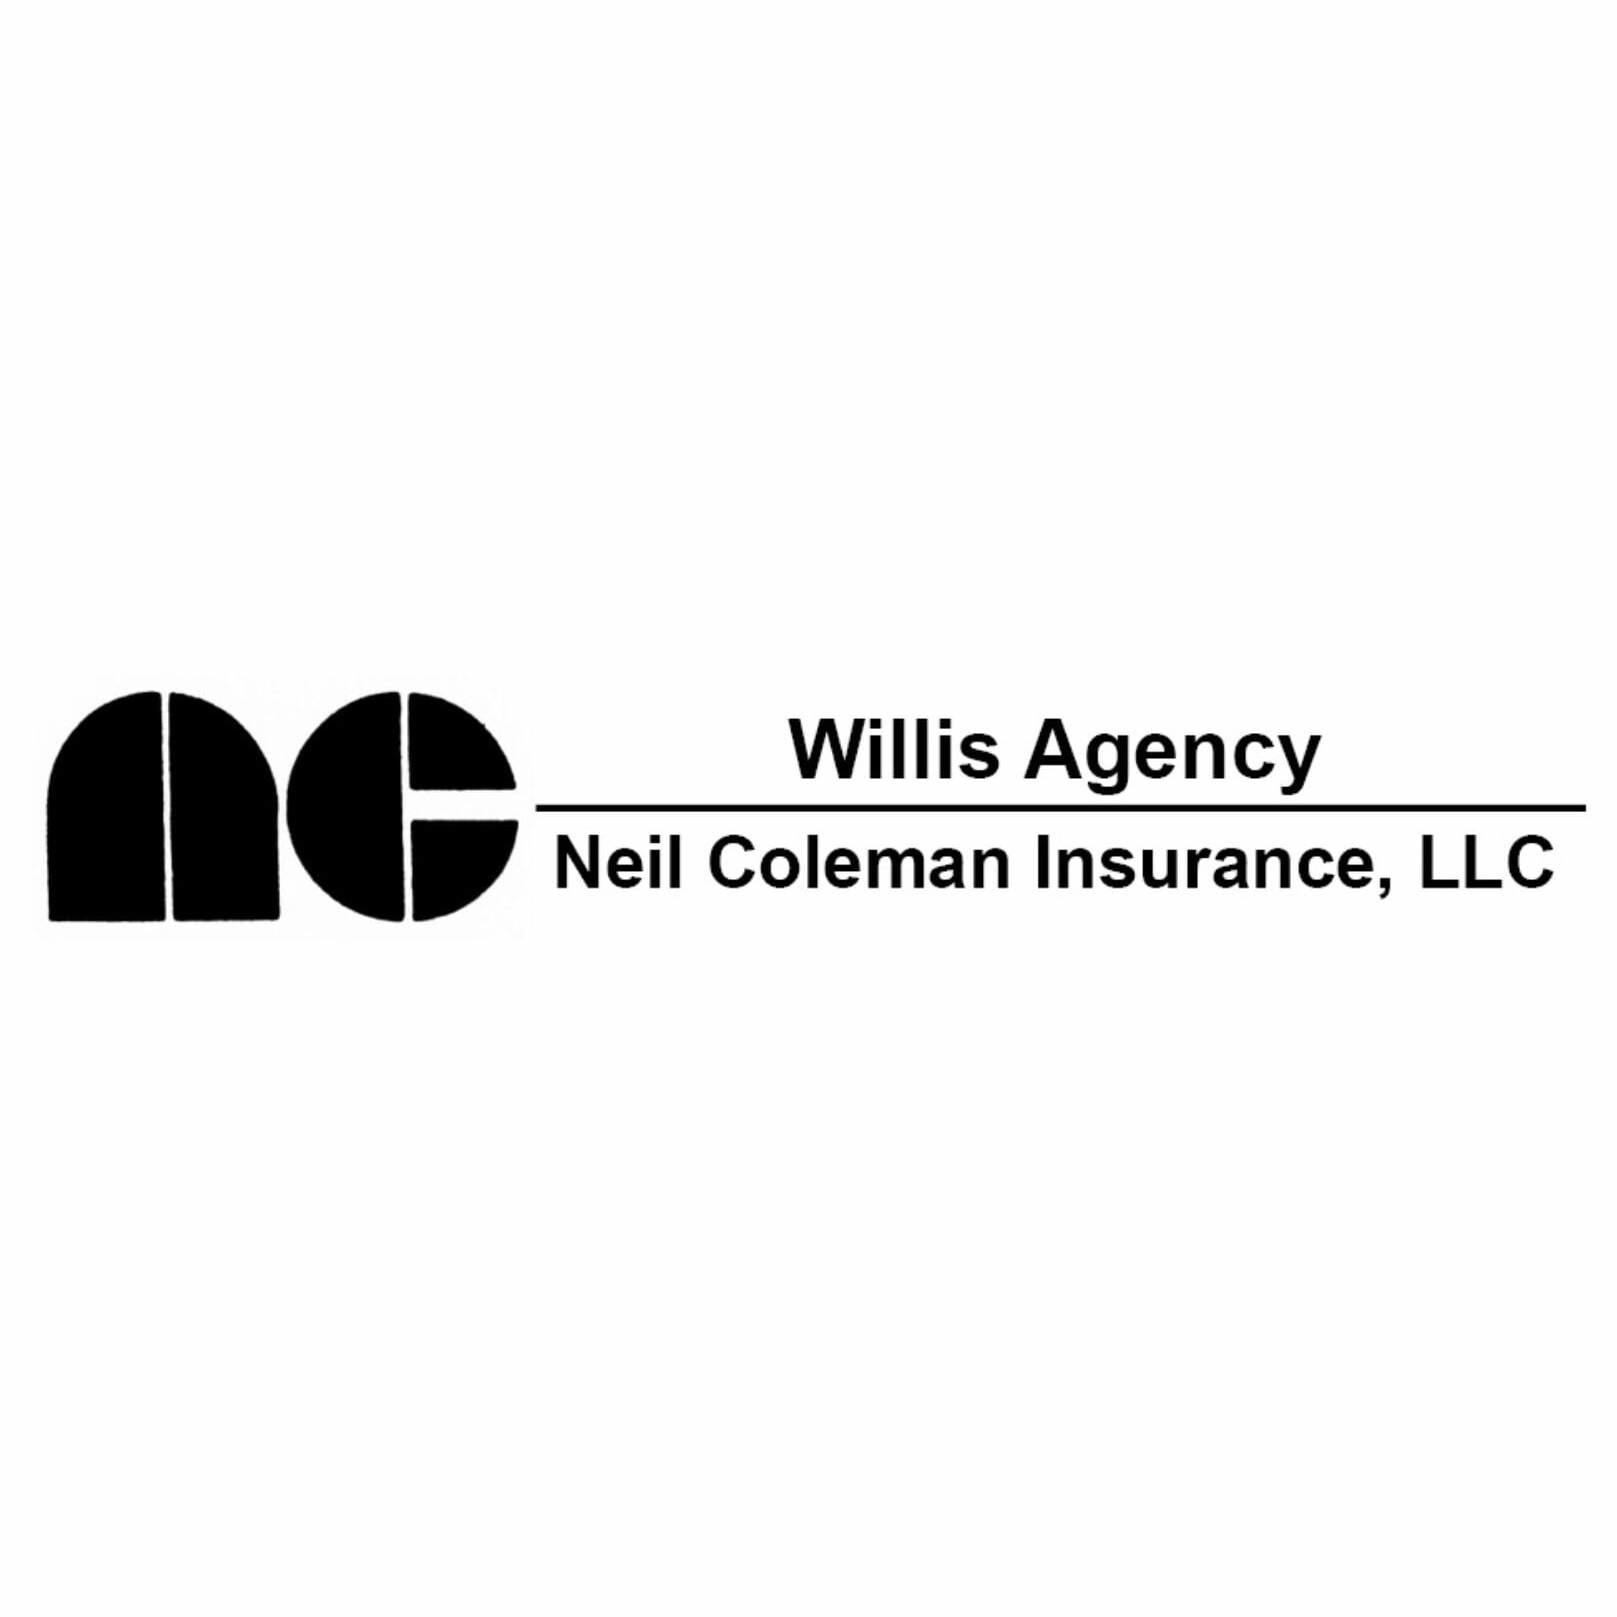 Willis Agency-Neil Coleman Insurance